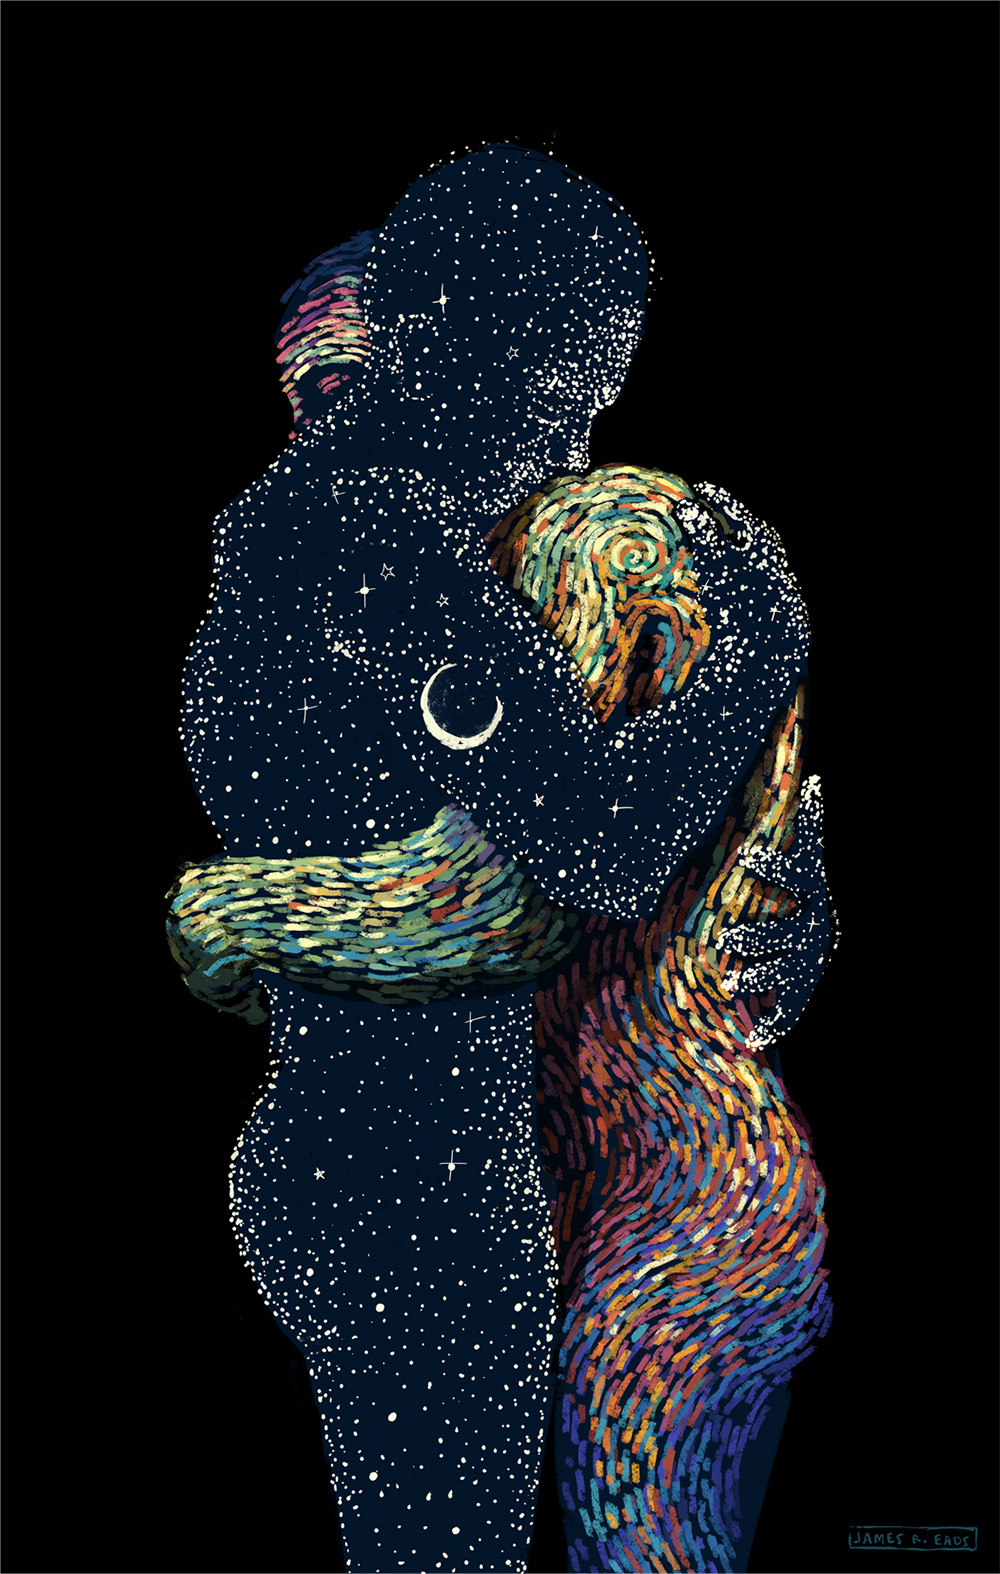 Swirling Illustrations By James R Eads Explore Human